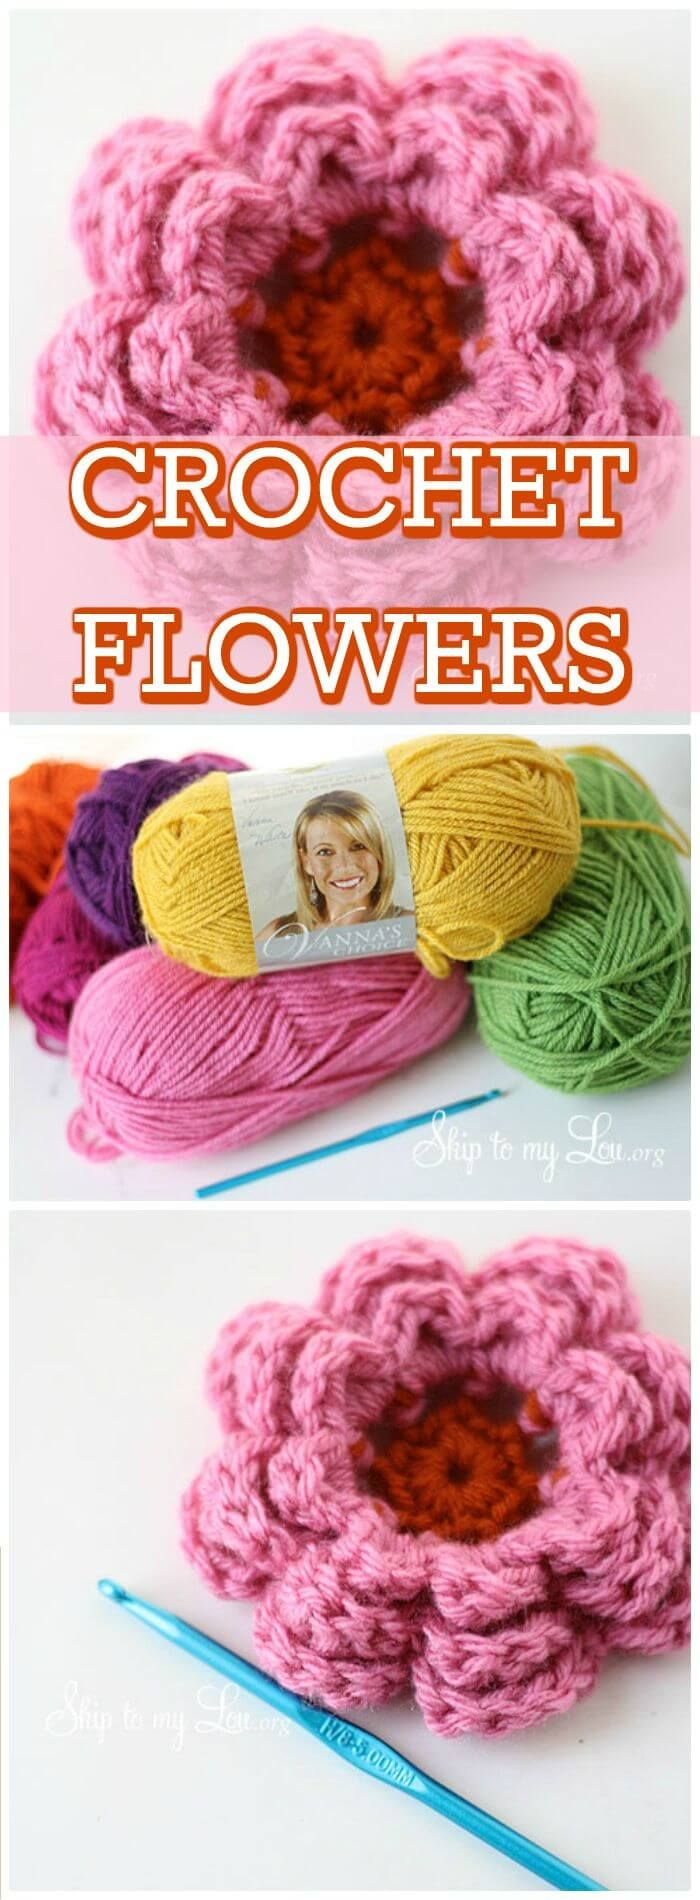 DIY Simple & Cute Crochet Flowers, Easy crochet flowers for beginners with free patterns! Easy and quick crochet flowers patterns with free guides!